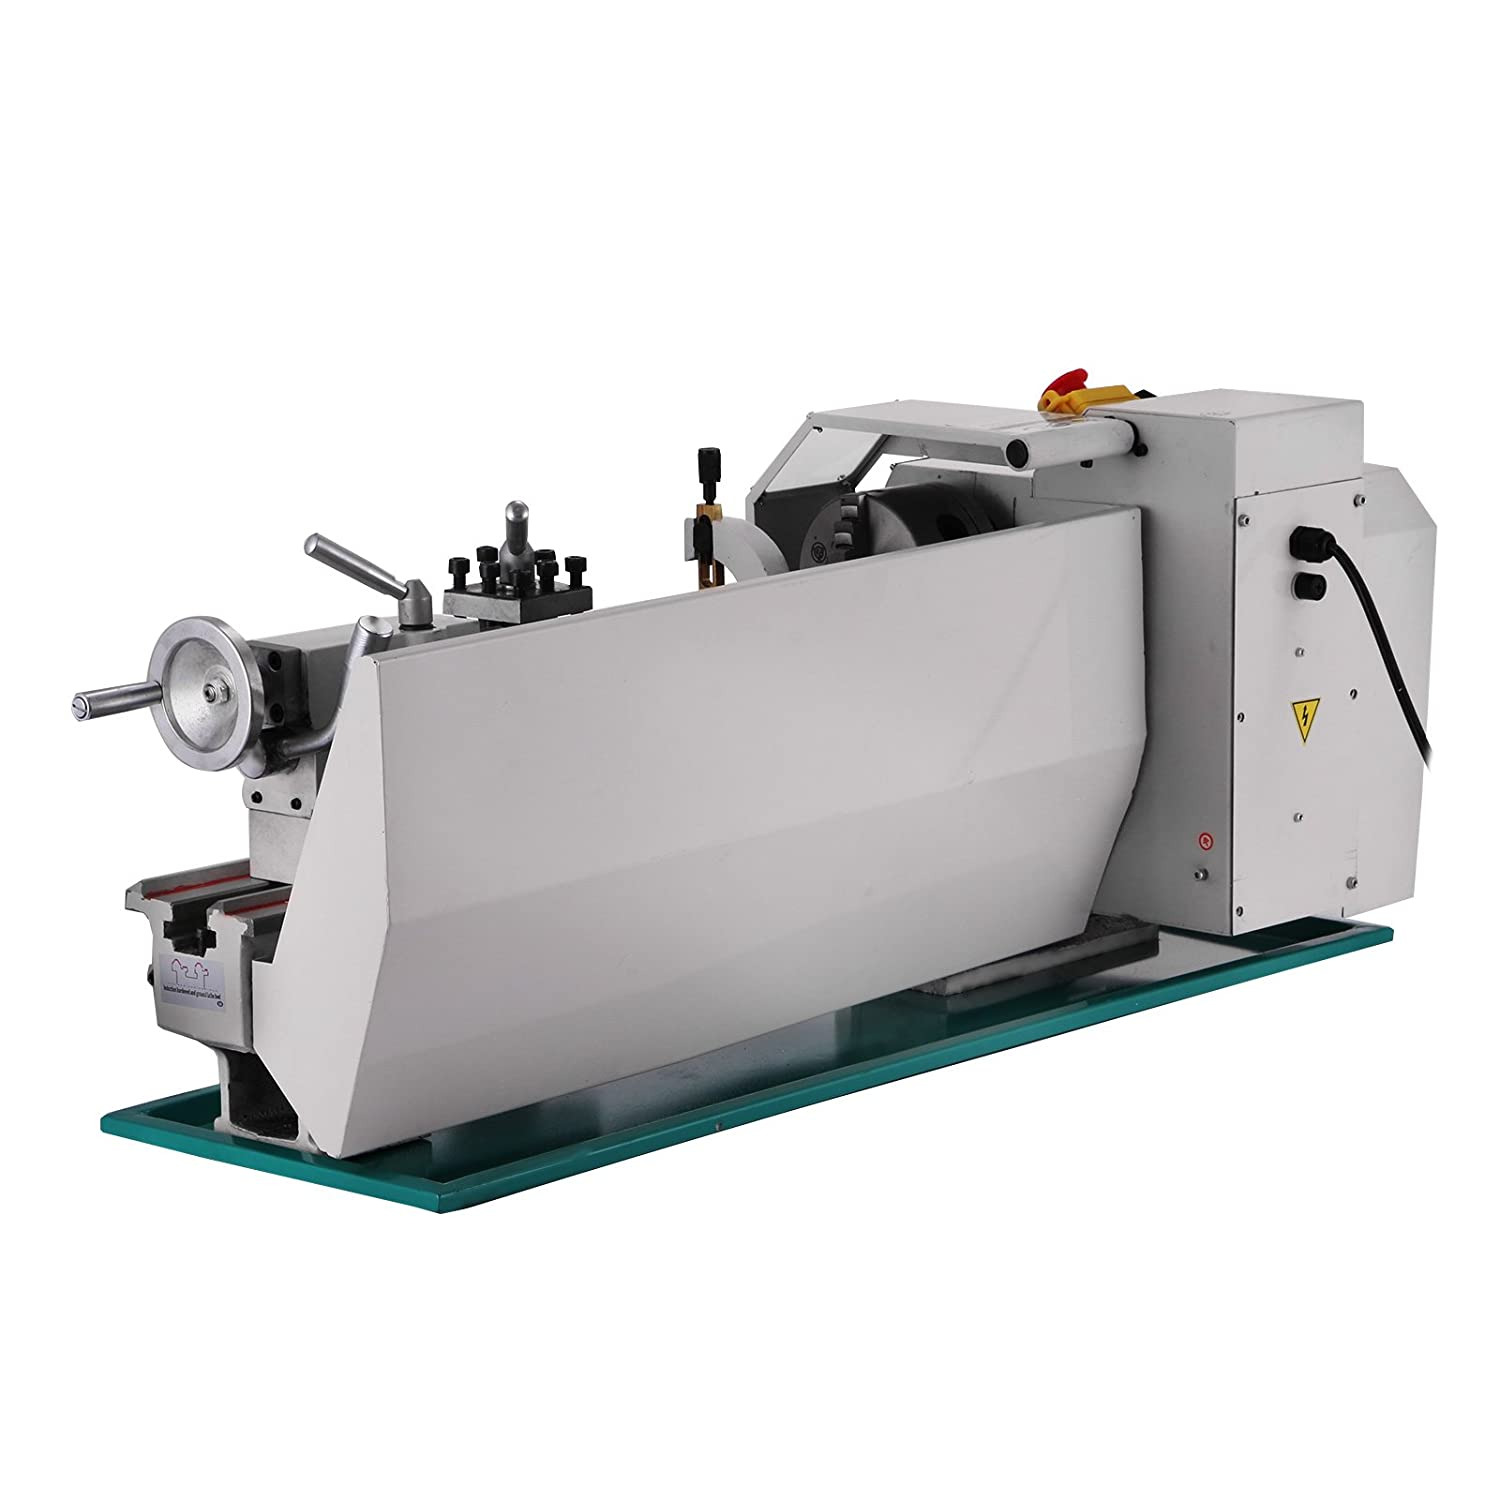 Mophorn Metal Lathe 8x16 Inch Precision Mini Lathe 2500 RPM 750W Variable  Speed Milling Benchtop Wood Lathe with Digital Control System (8 x 16 Inch)